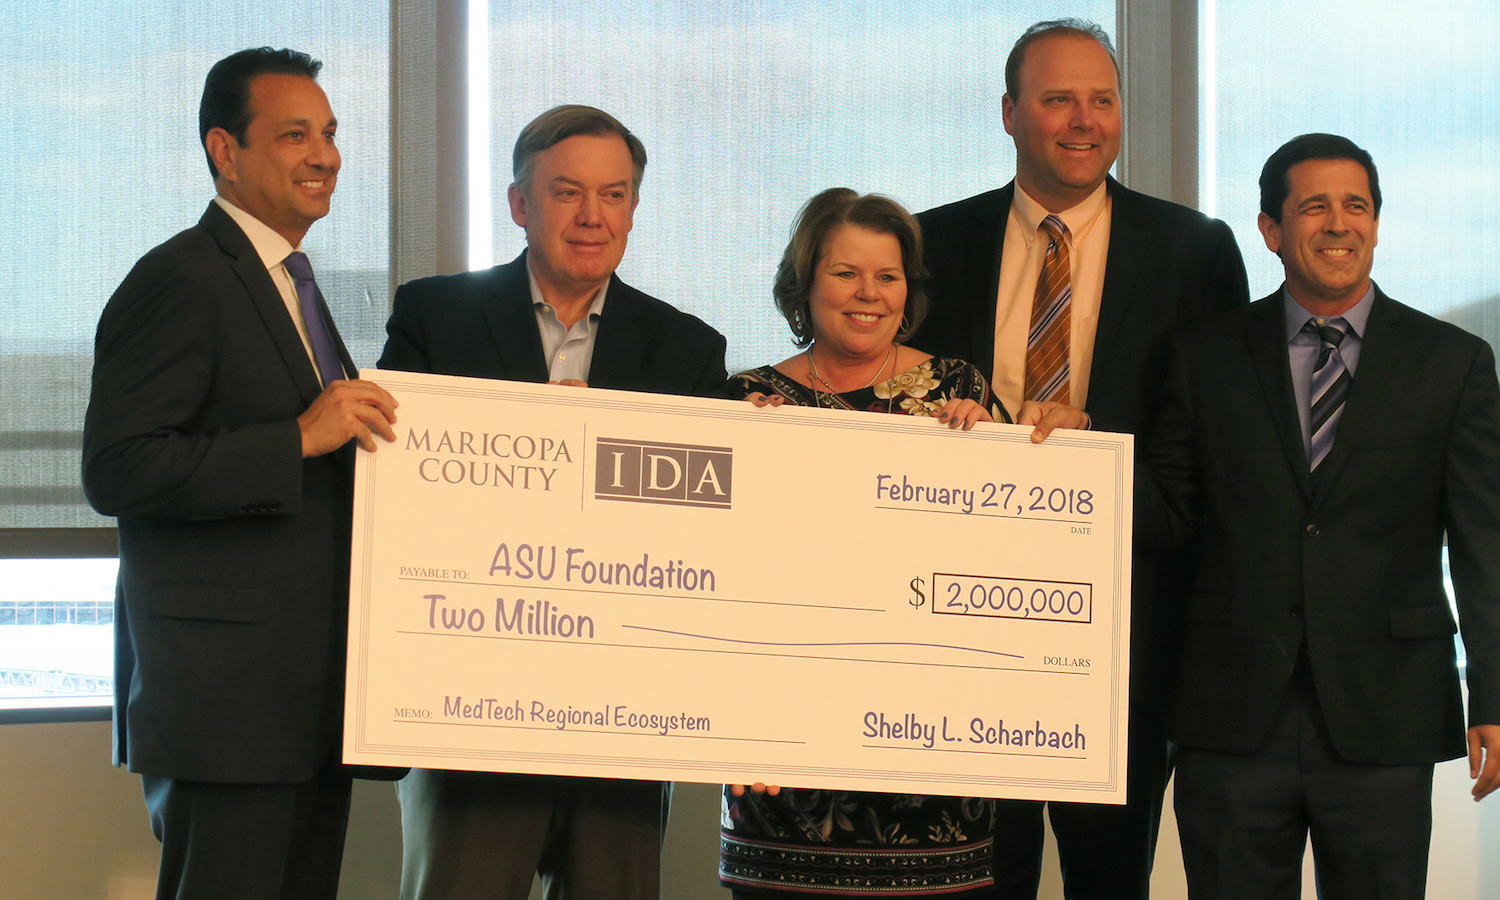 Photo of five people standing behind an oversized check. Caption: ASU President Michael Crow (second from left) accepts $2 million check to kick off a medical technology workforce development initiation. Pictured with Maricopa County Board of Supervisors Chairman Steve Chucri, District 2, MCIDA Executive Director Shelby L. Scharbach, MCIDA Board Member Jeremy Stawiecki, and MCIDA Business Development Officer Gregg Ghelfi. Photographer: Charrie Larkin/ASU.